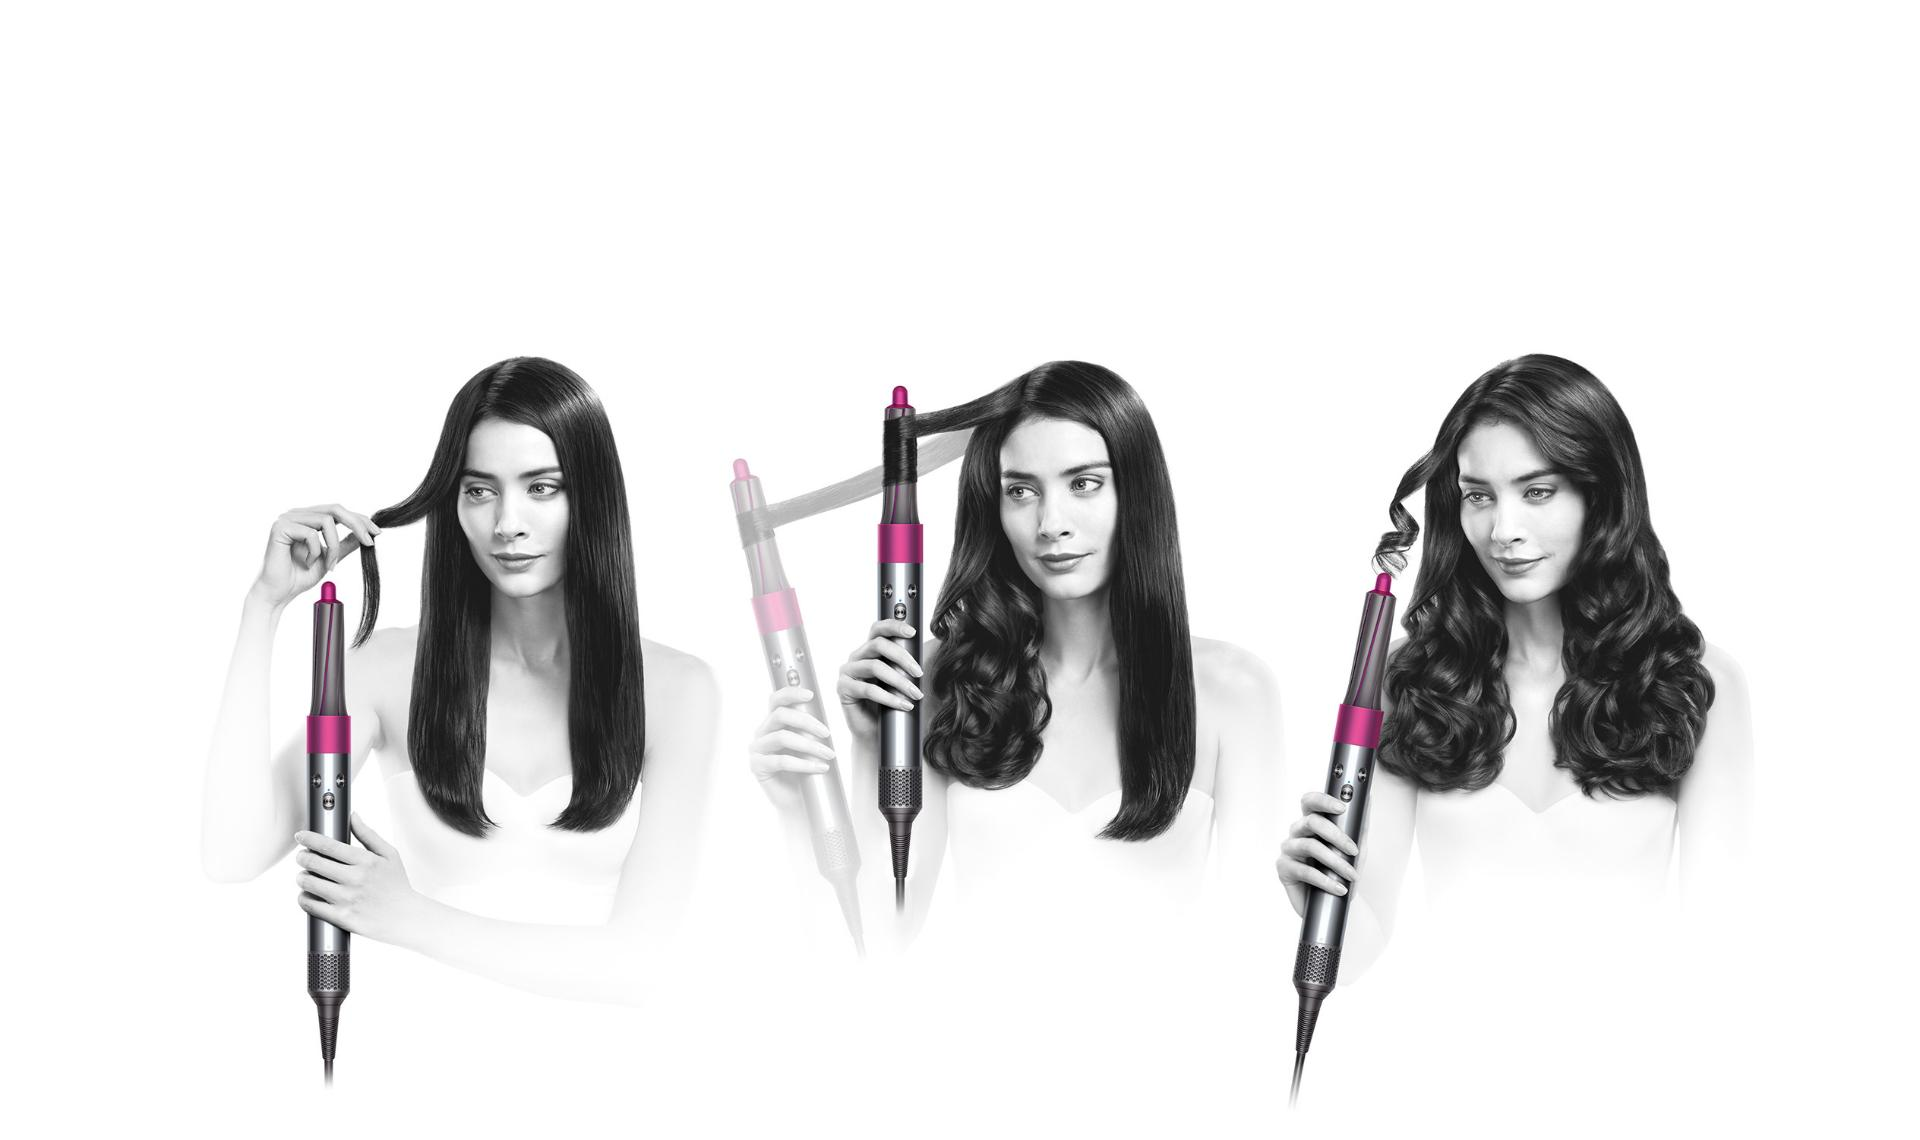 Play the video: How to curl your hair with the dyson airwrap styler